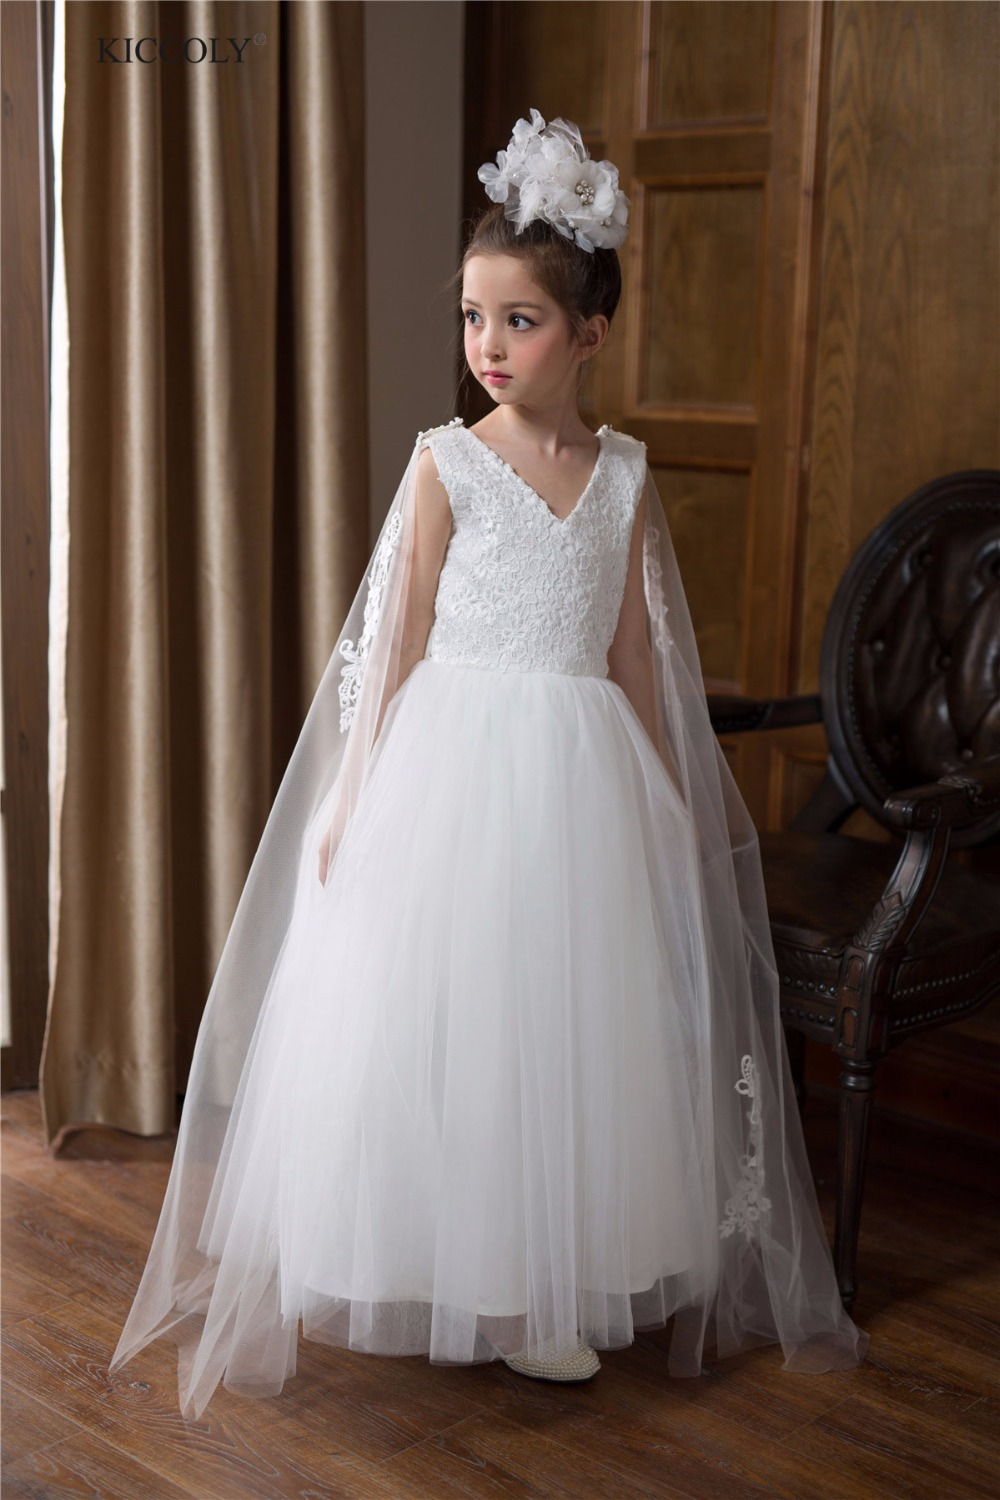 2018 White Girl Wedding Dress 5-14Y Teenager Summer Detachable Embroidered Shawl Ball Gown Kid Dresses for Wedding Party Dress<br>